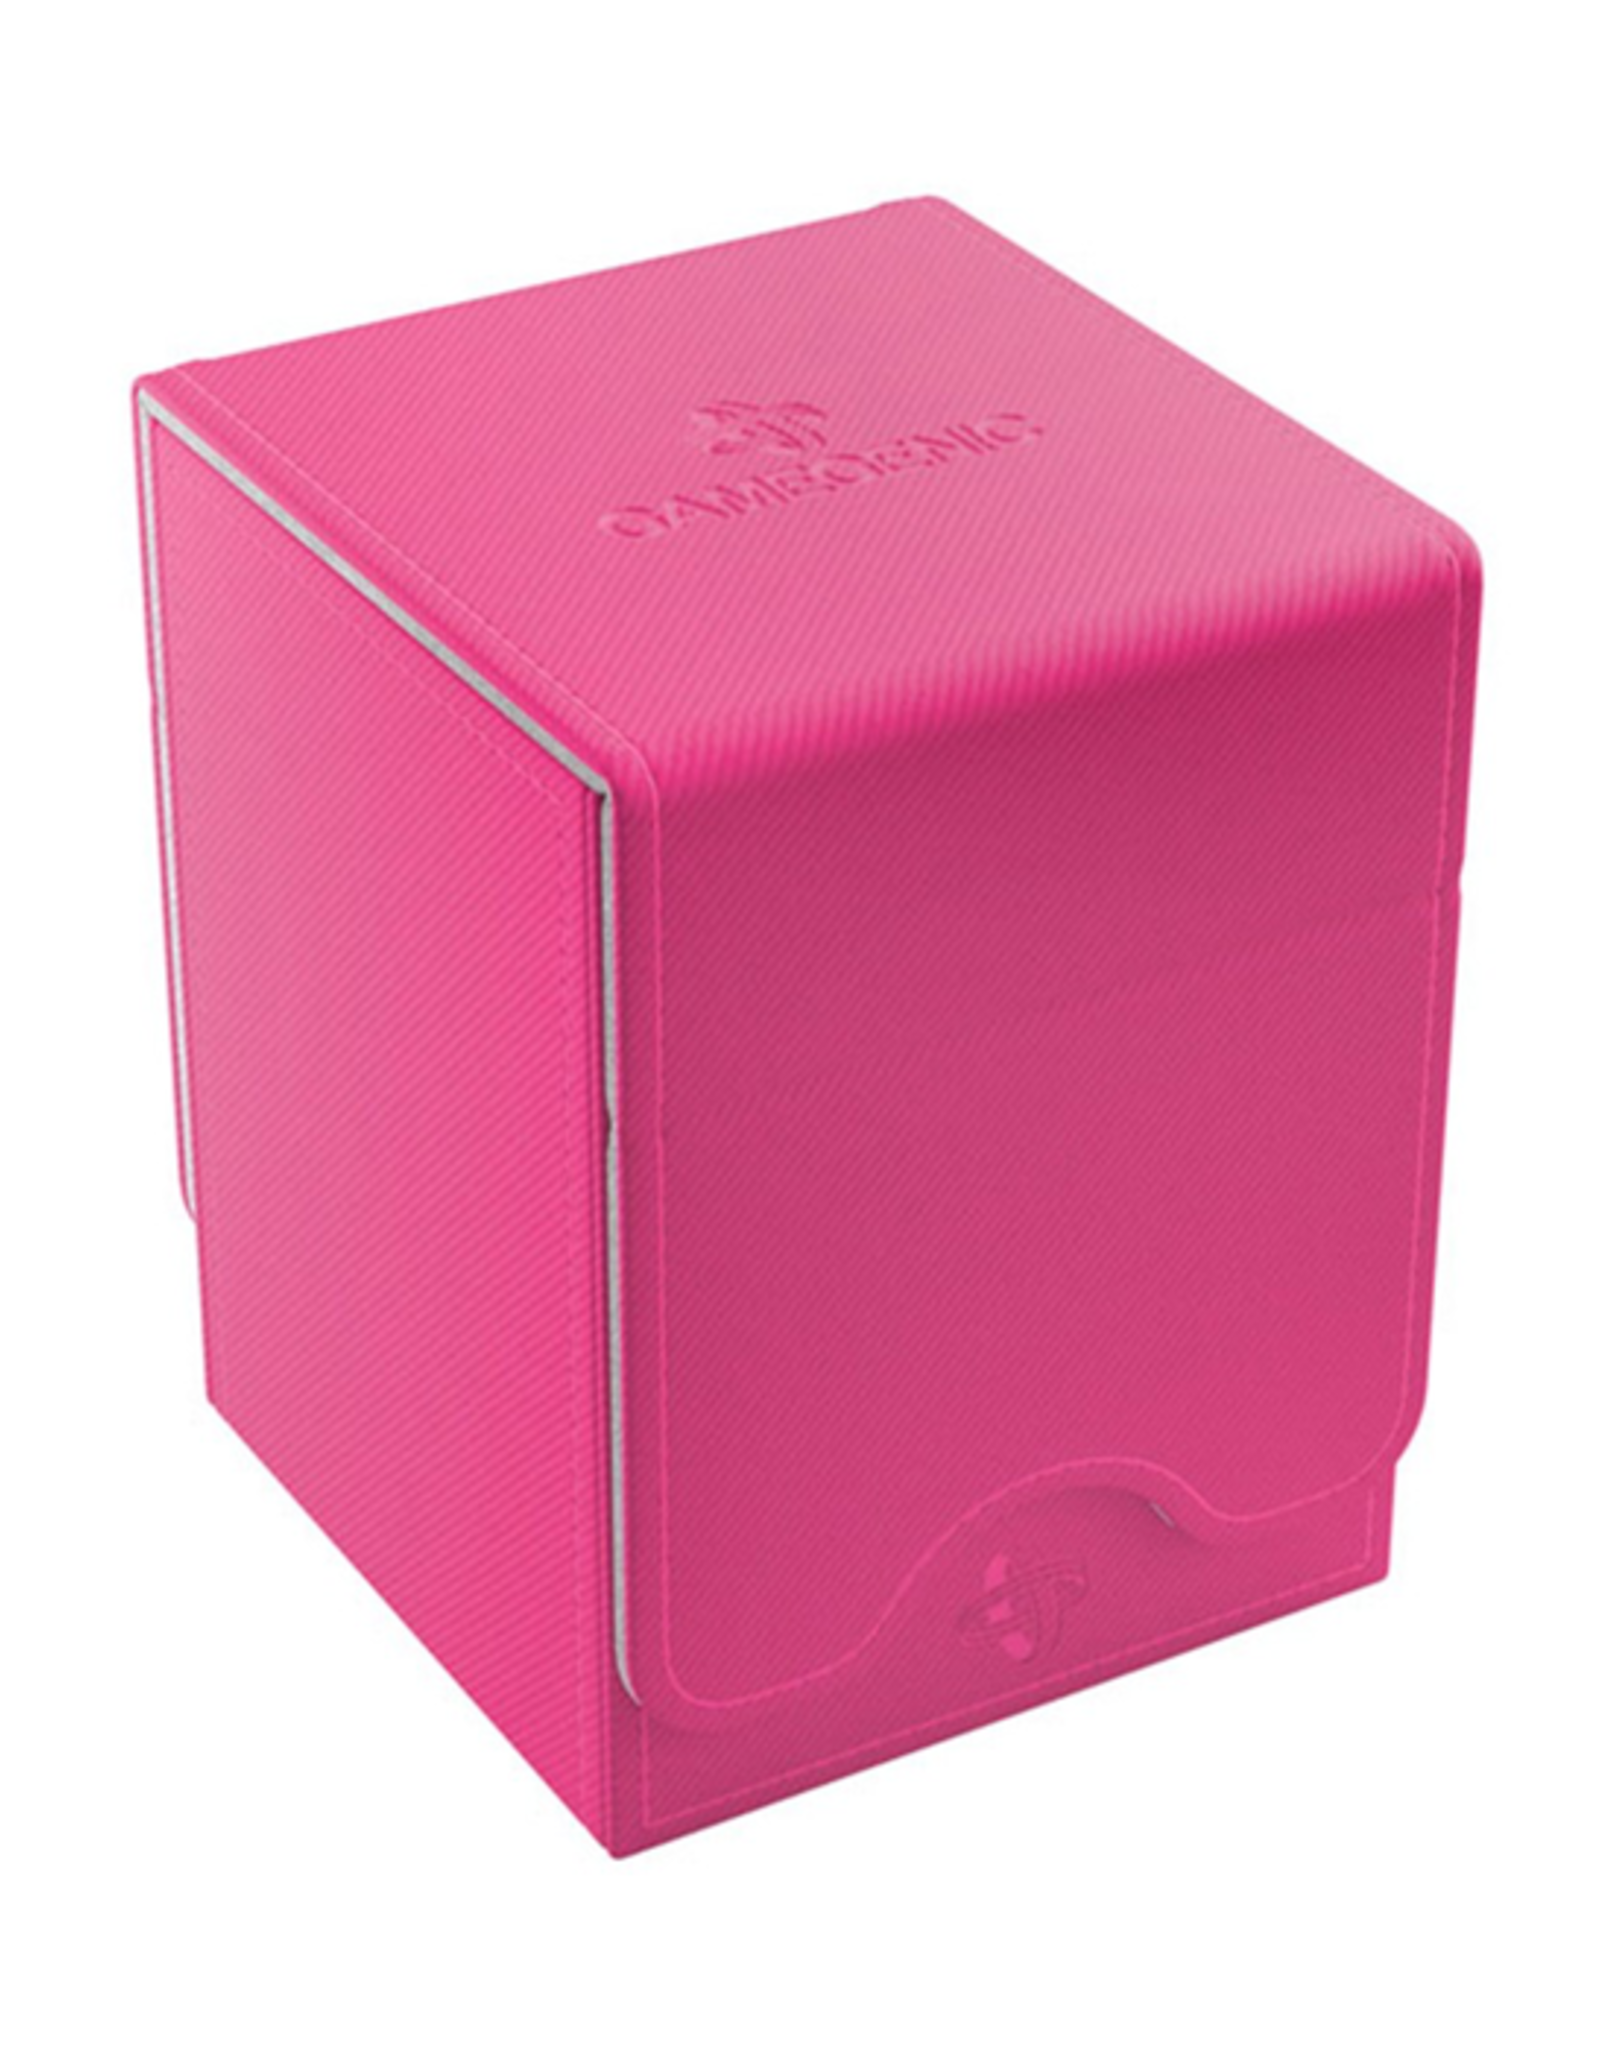 Gamegenic Gamegenic: Deck Box - Squire 100+ - Pink